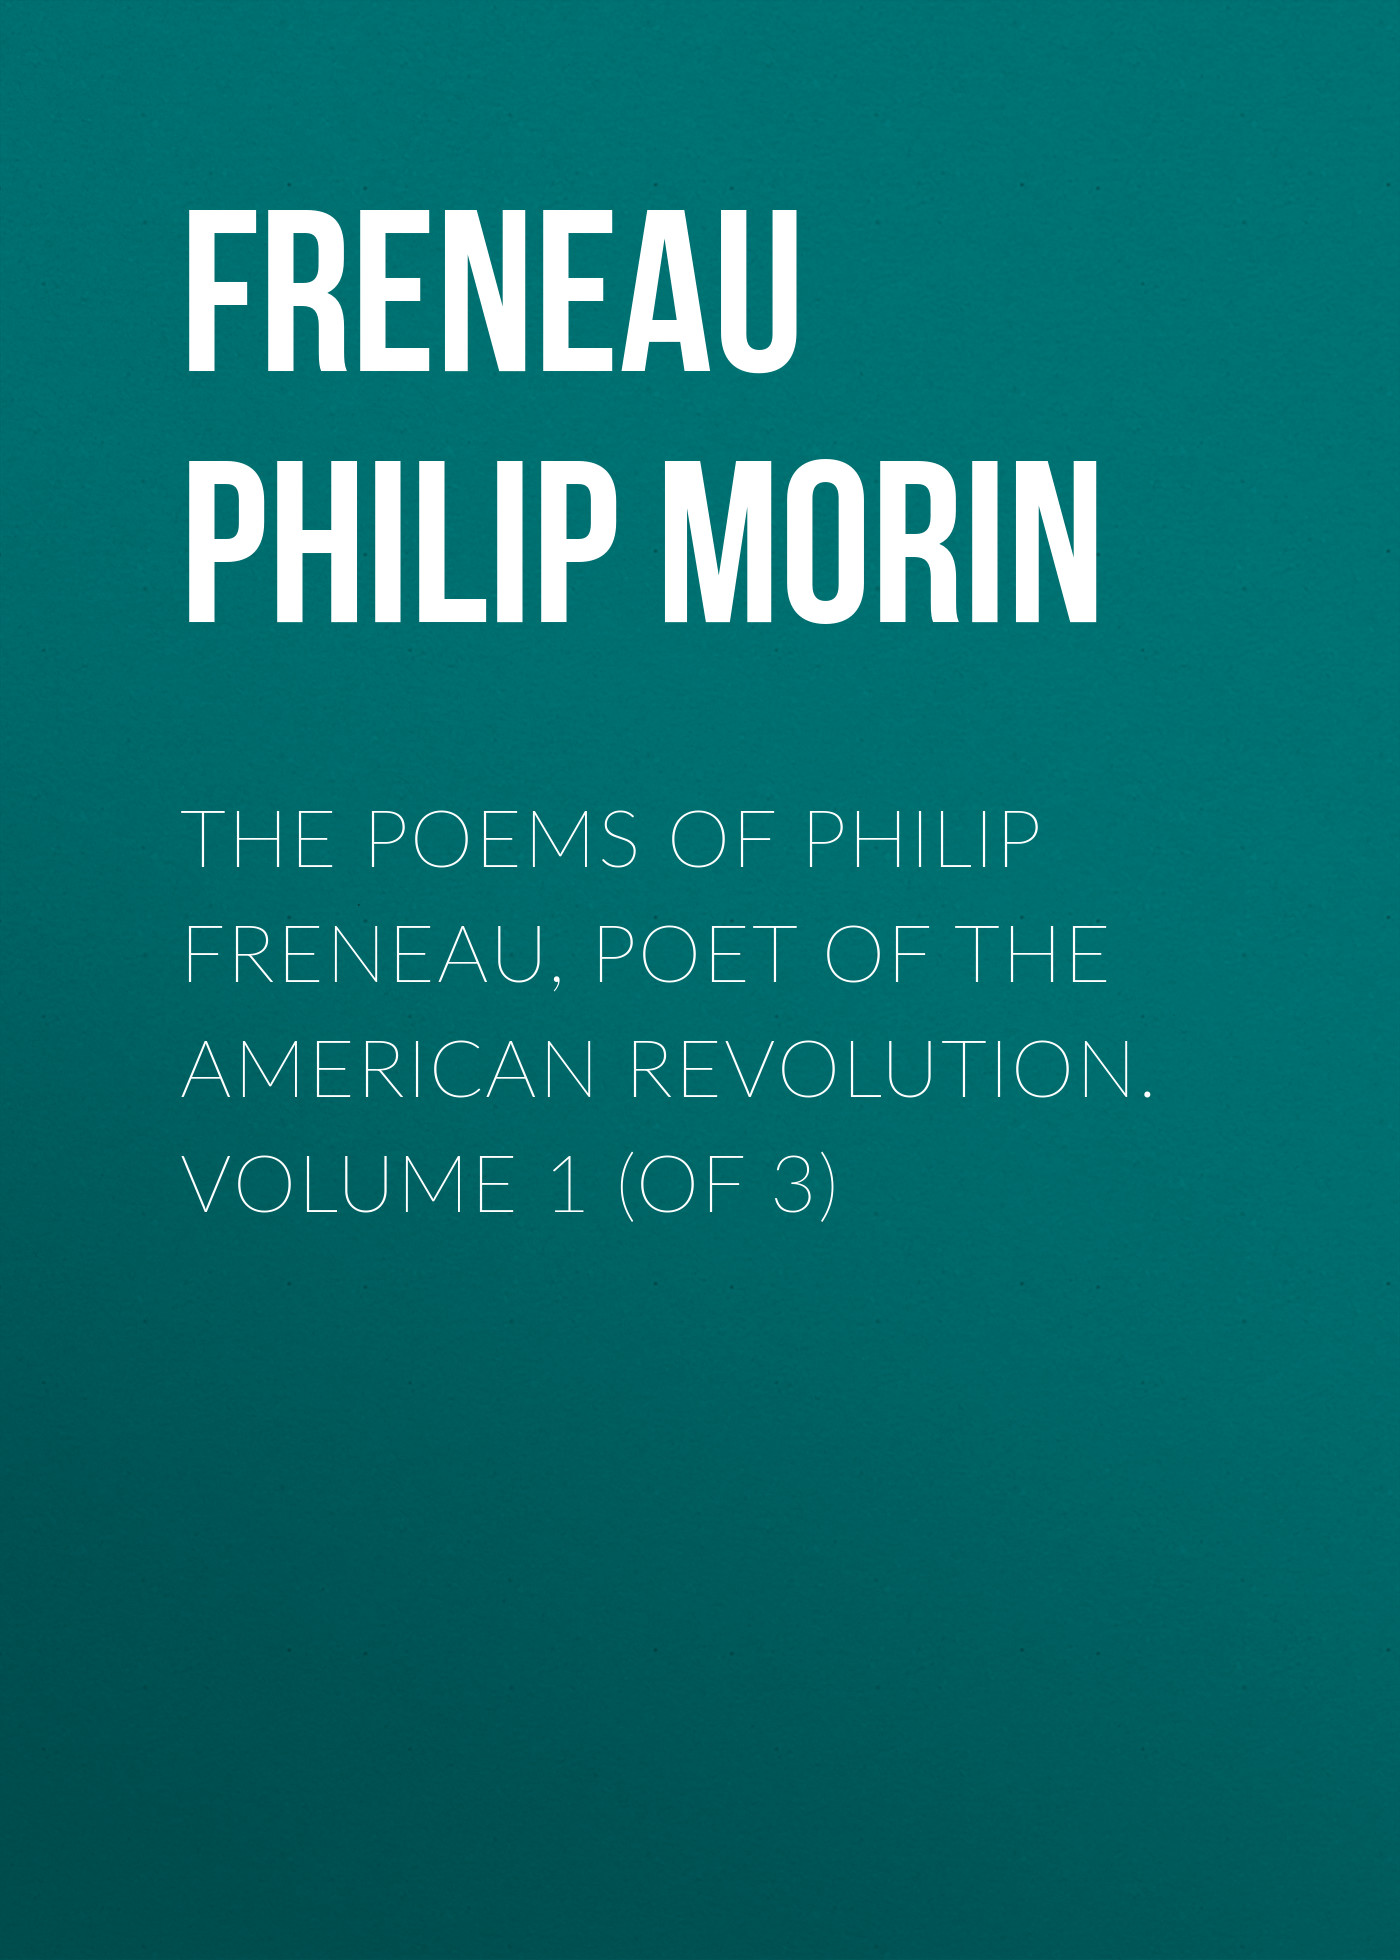 Freneau Philip Morin The Poems of Philip Freneau, Poet of the American Revolution. Volume 1 (of 3) philip glass the best of philip glass 2 cd